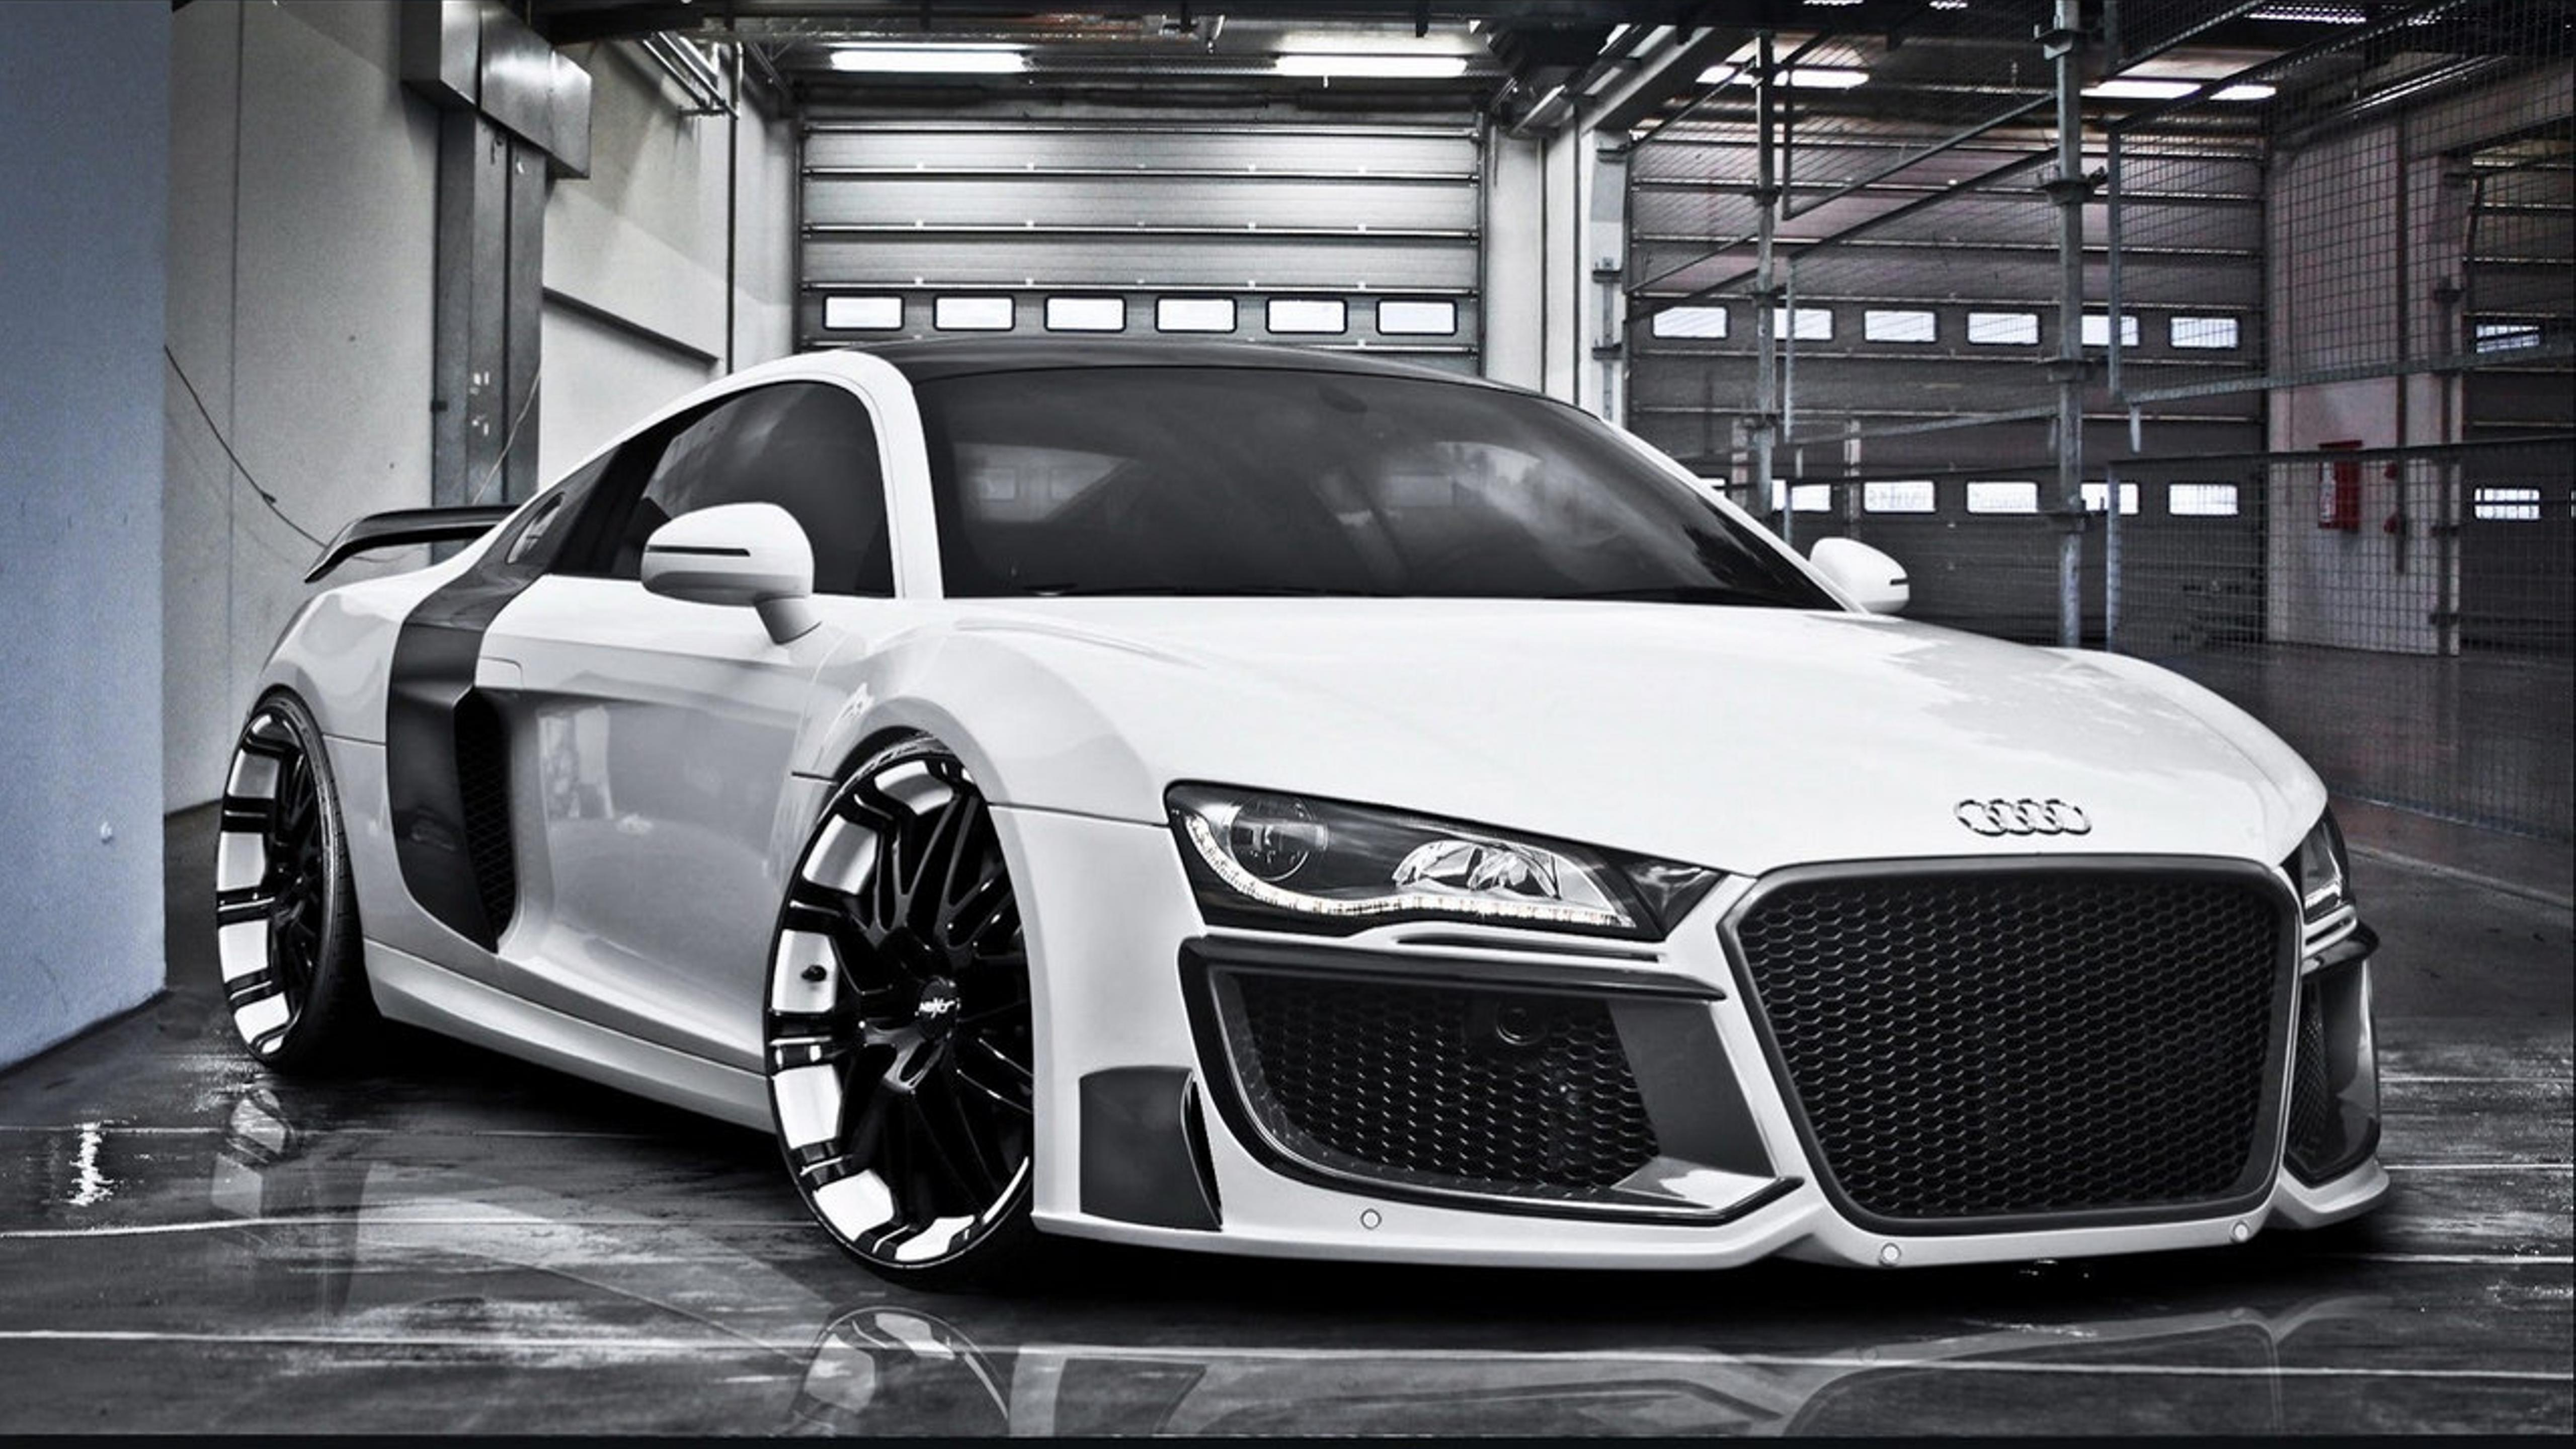 white audi r8 altered tuning in the garage wallpaper download 5120x2880. Black Bedroom Furniture Sets. Home Design Ideas